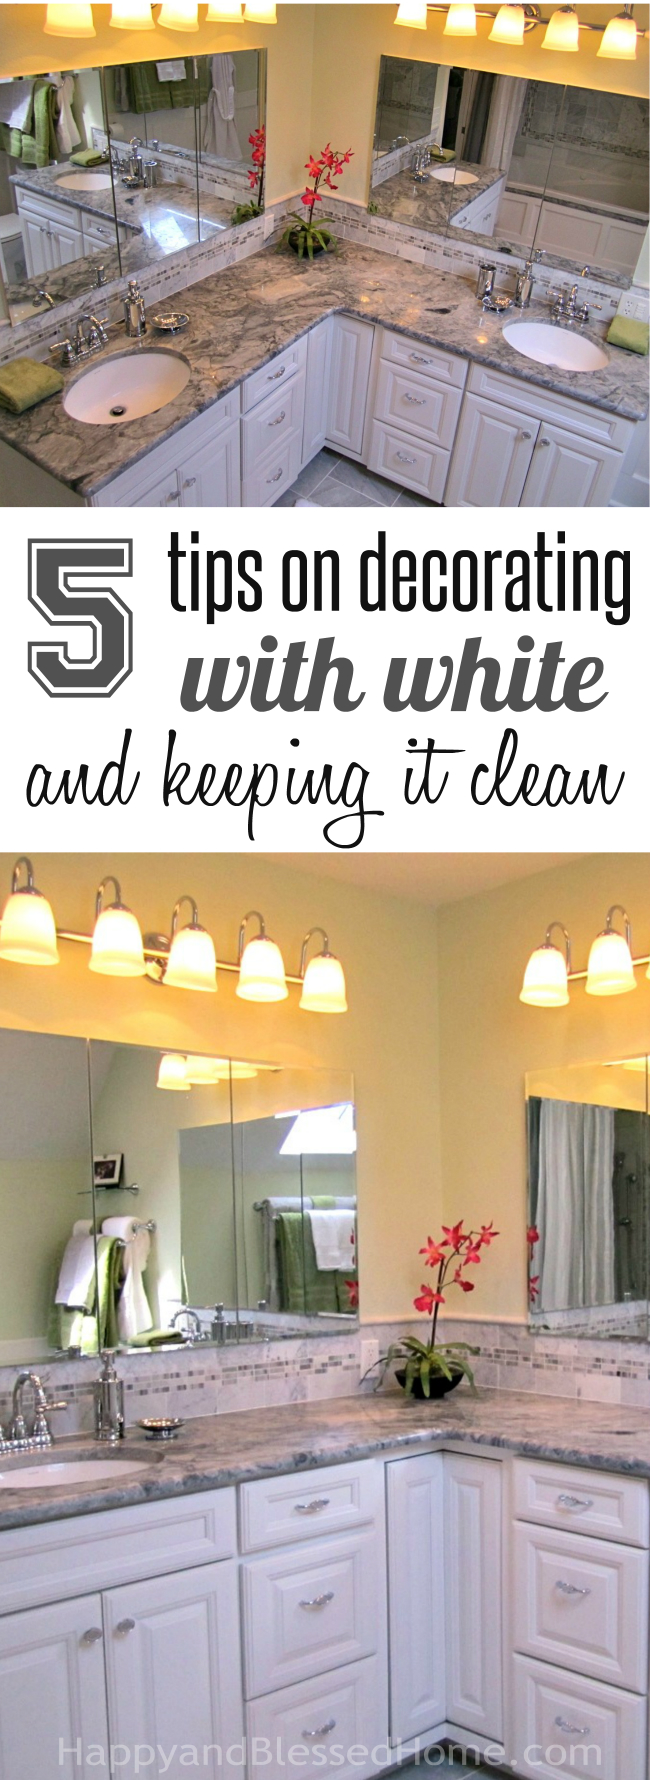 5 Tips on Decorating with white and keeping it clean - from HappyandBlessedHome.com